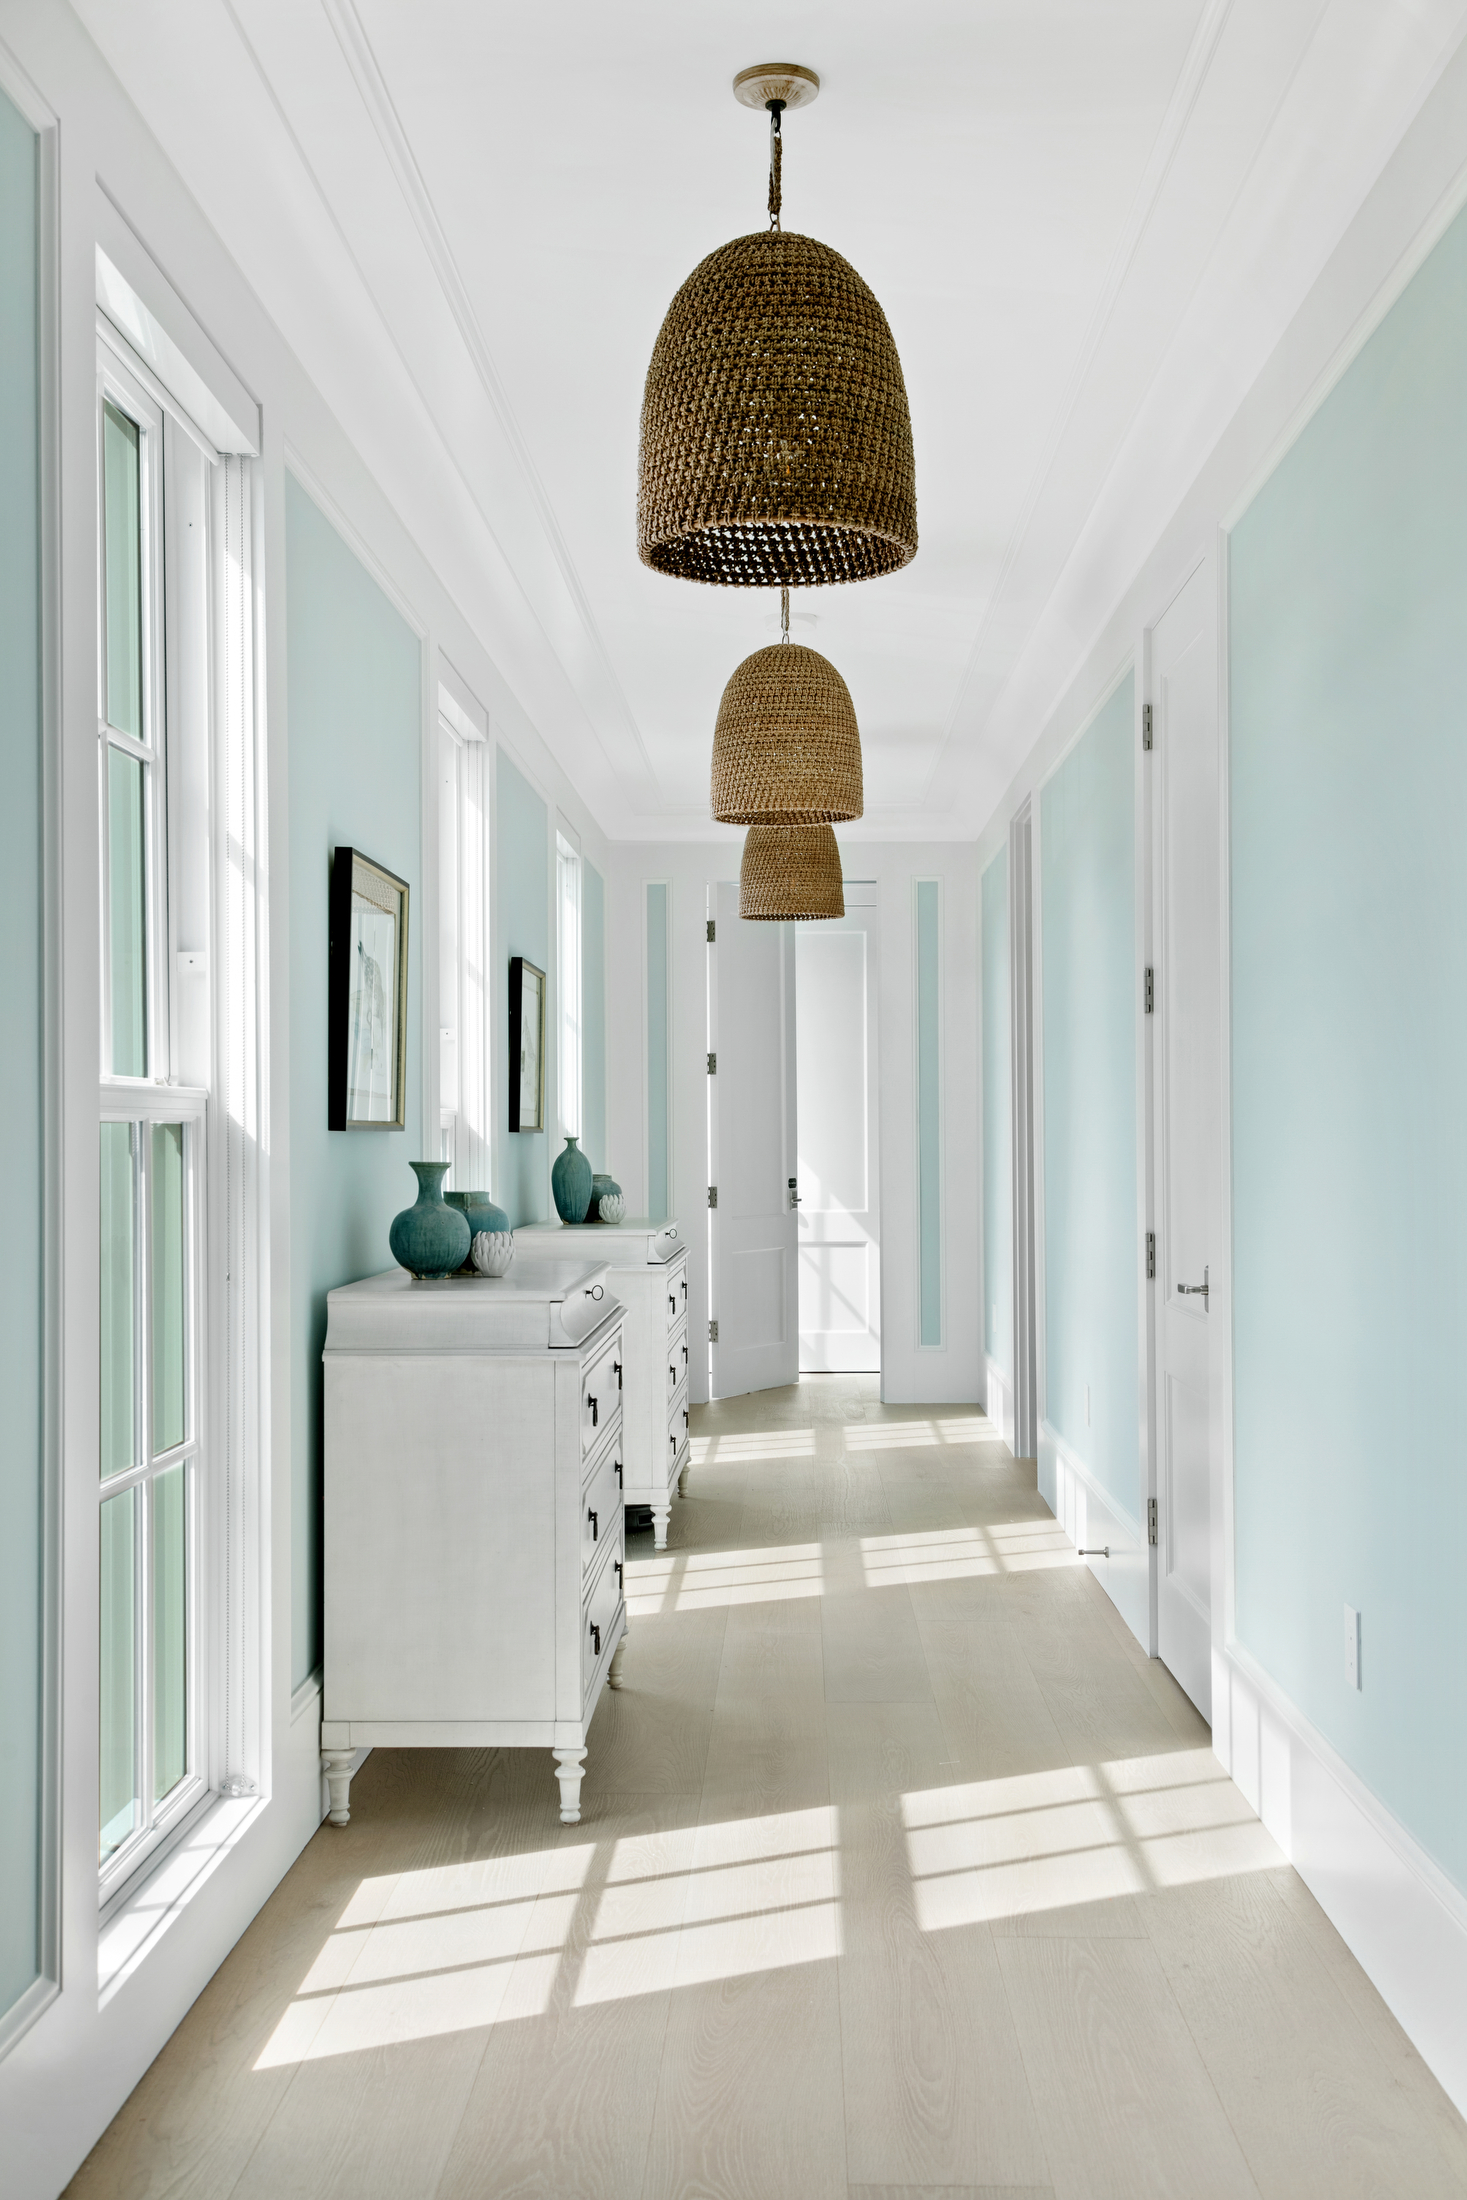 Hallway space with pendant lighting